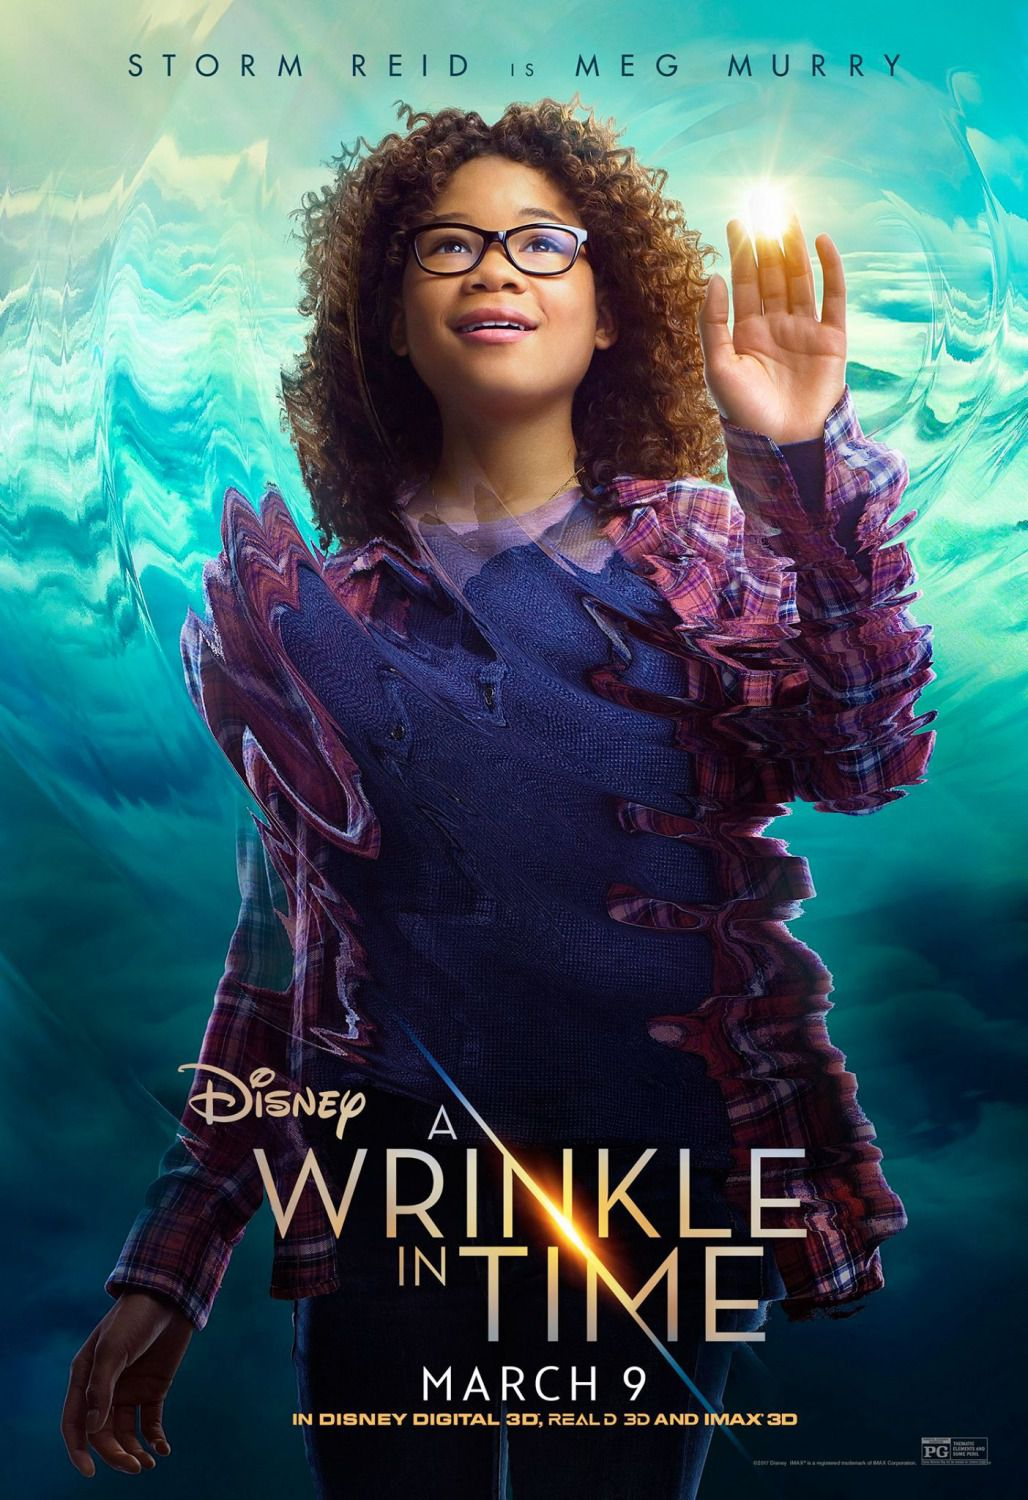 Wrinkle in Time - Storm Reid is Meg Murry